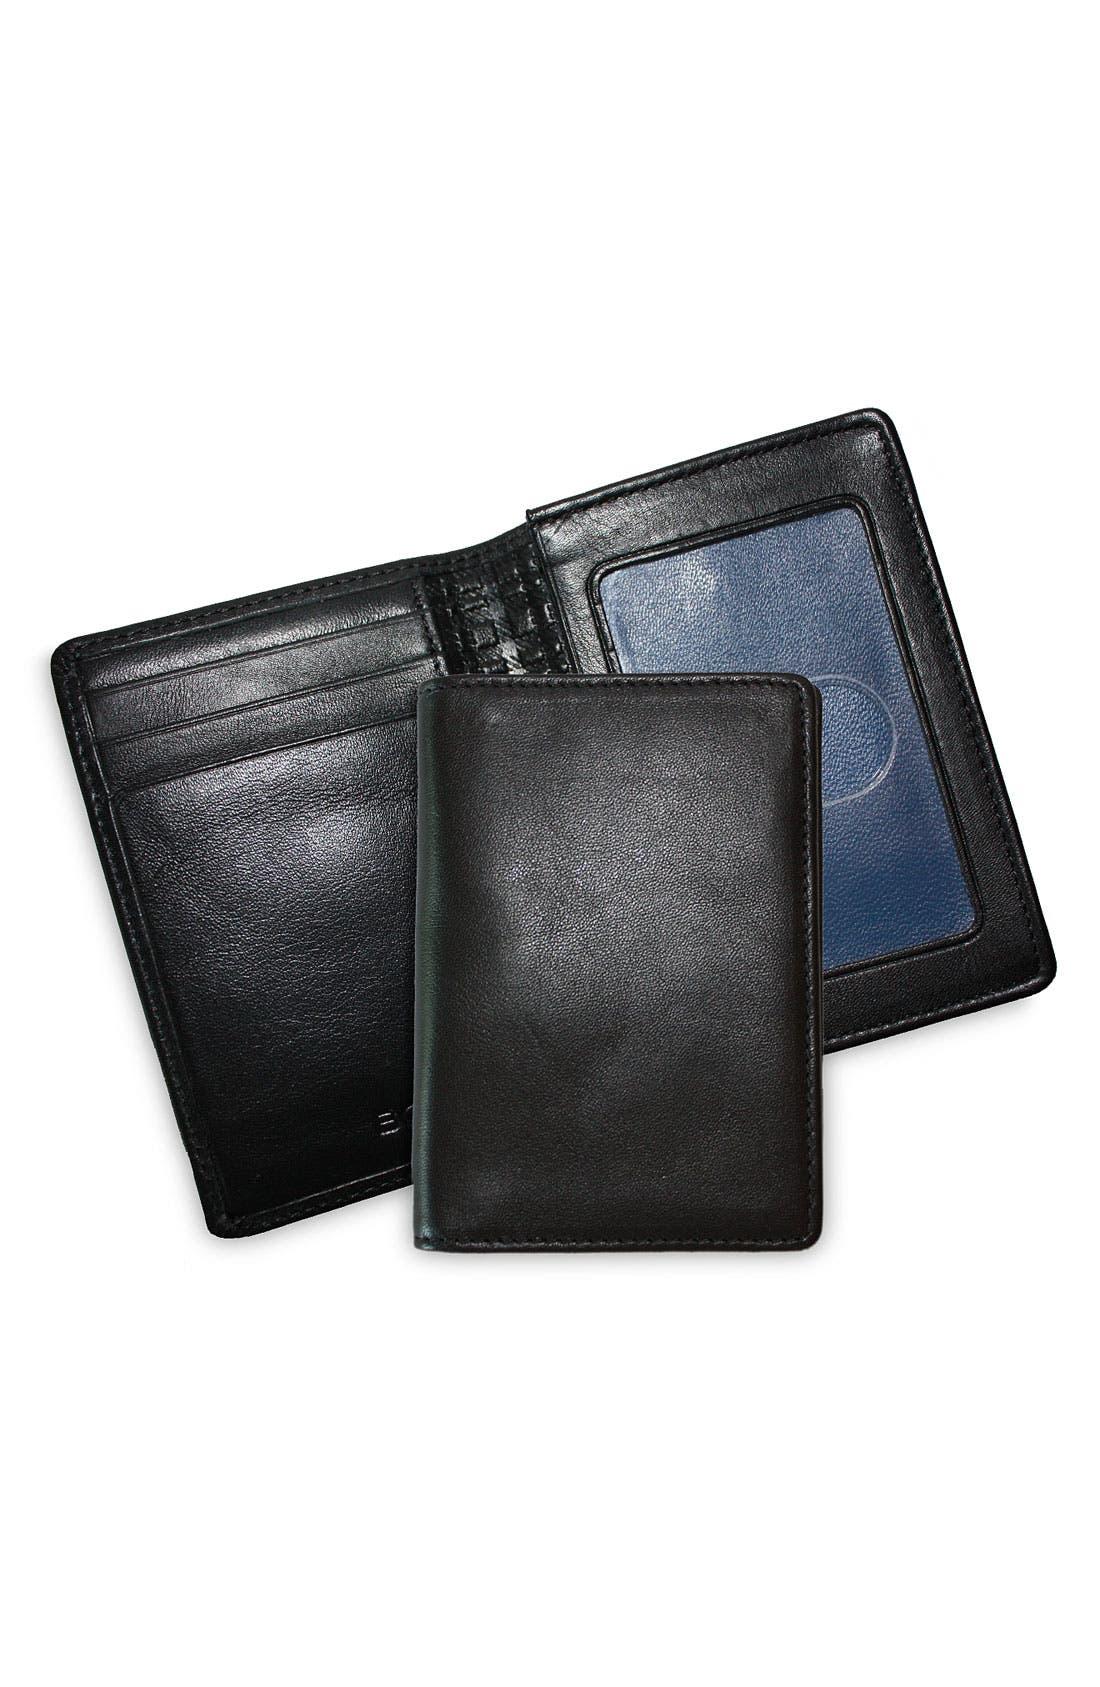 Alternate Image 1 Selected - Boconi 'Deluxe' Card Case